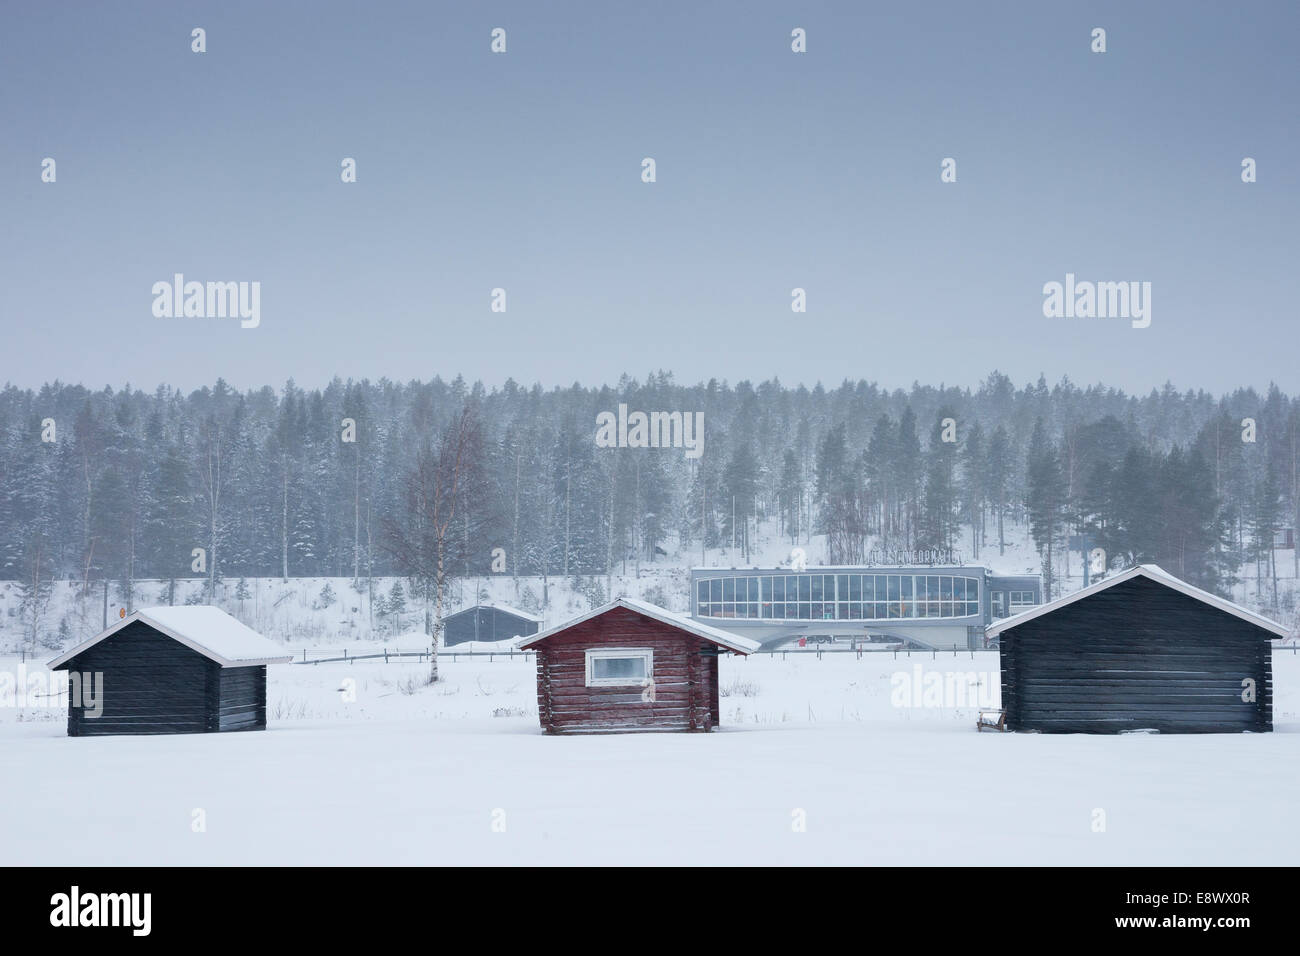 JAVRE, SWEDEN Motorway service station behind traditional wooden structures in snow. Stock Photo